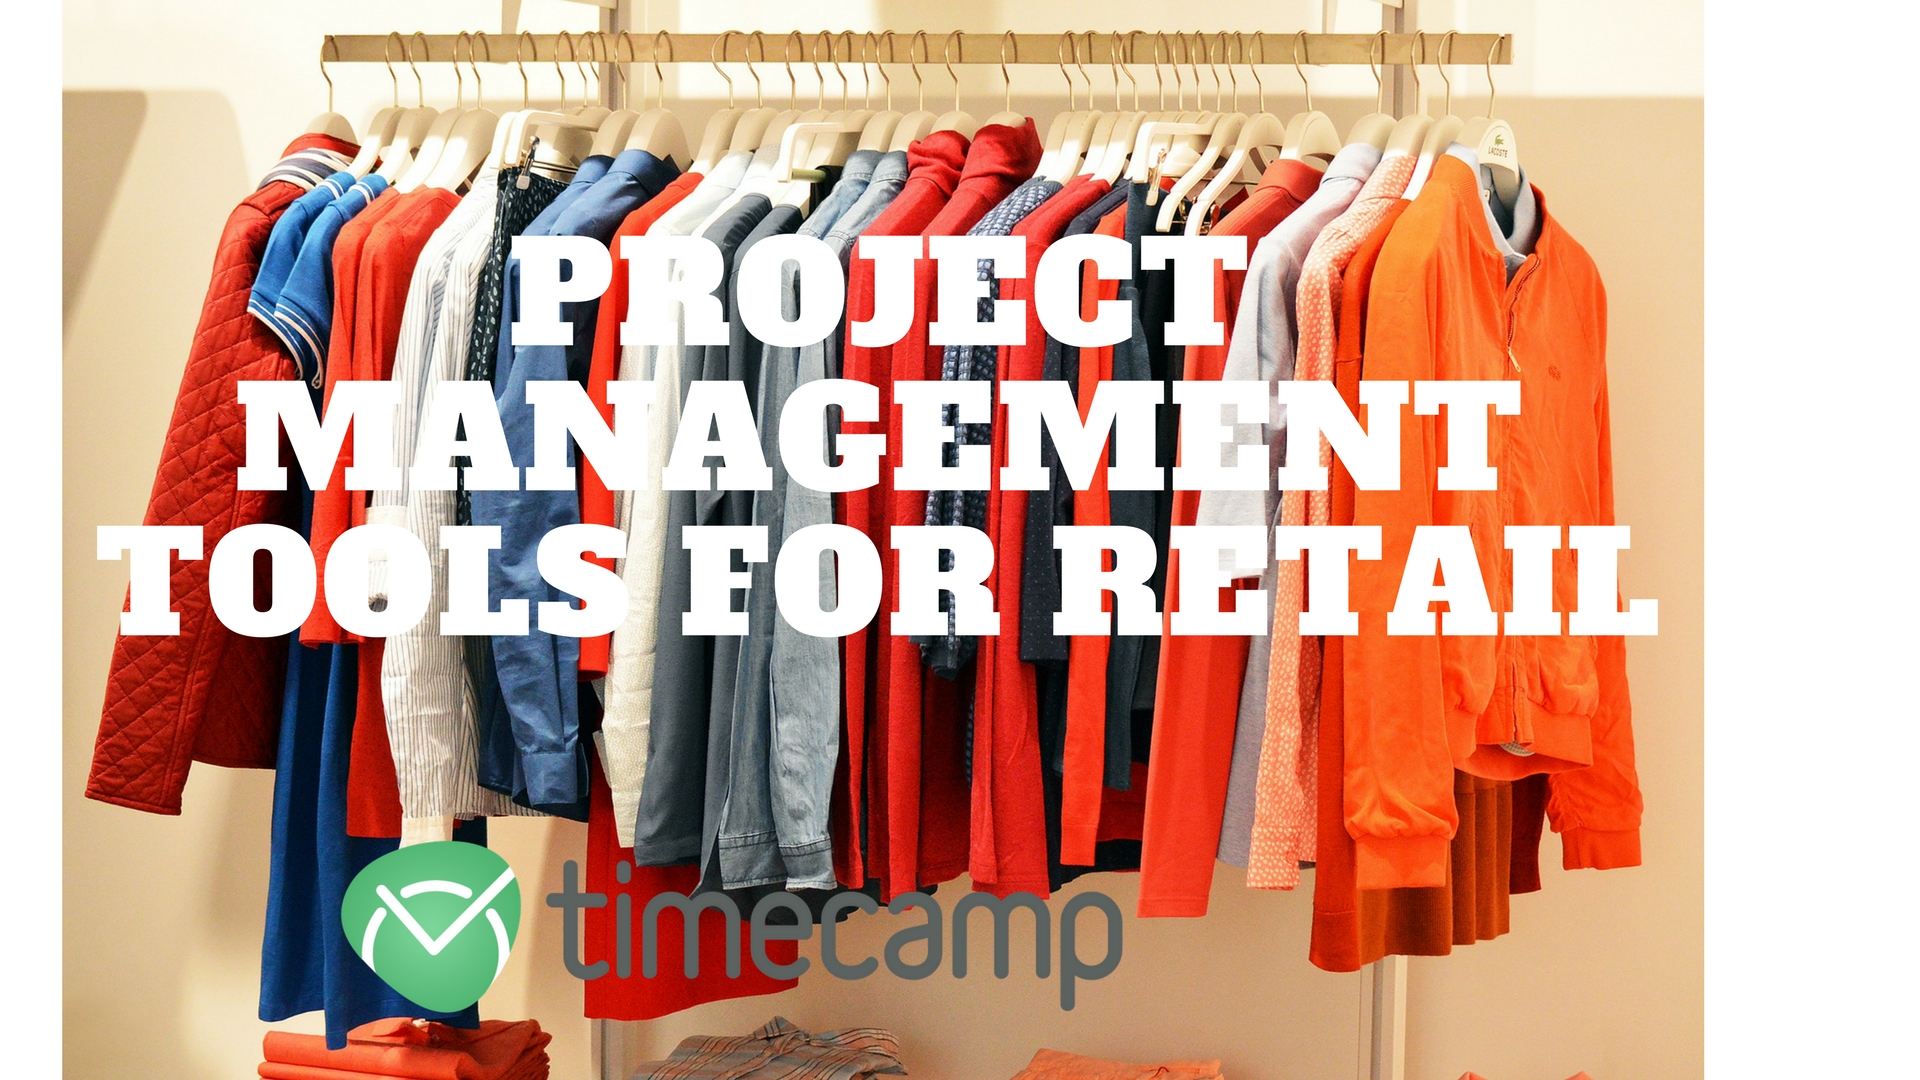 Project Management Tools for Retail